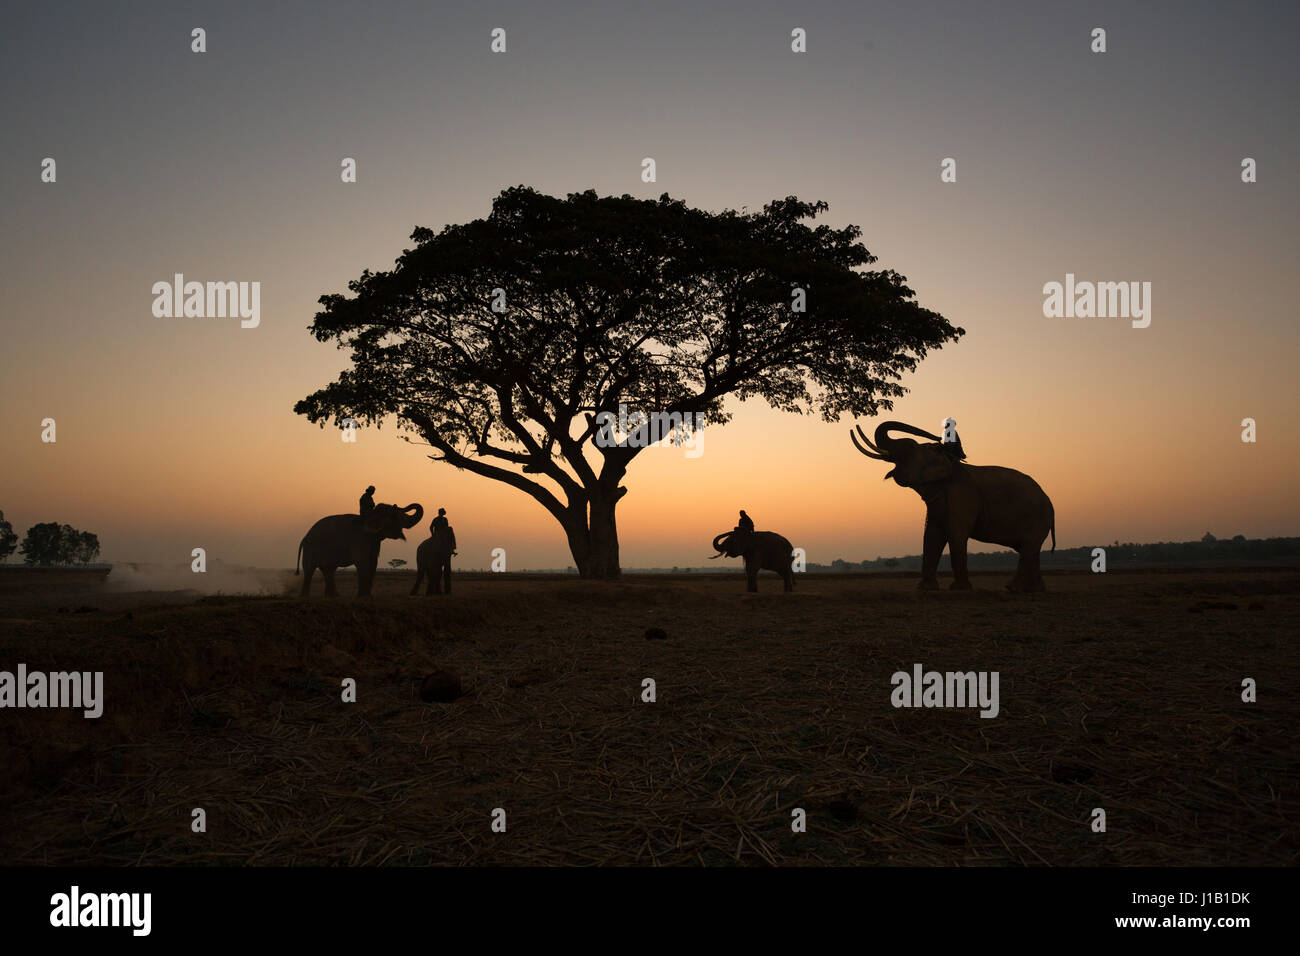 Thai Silhouette elephants on the field and tree sunrise background. - Stock Image